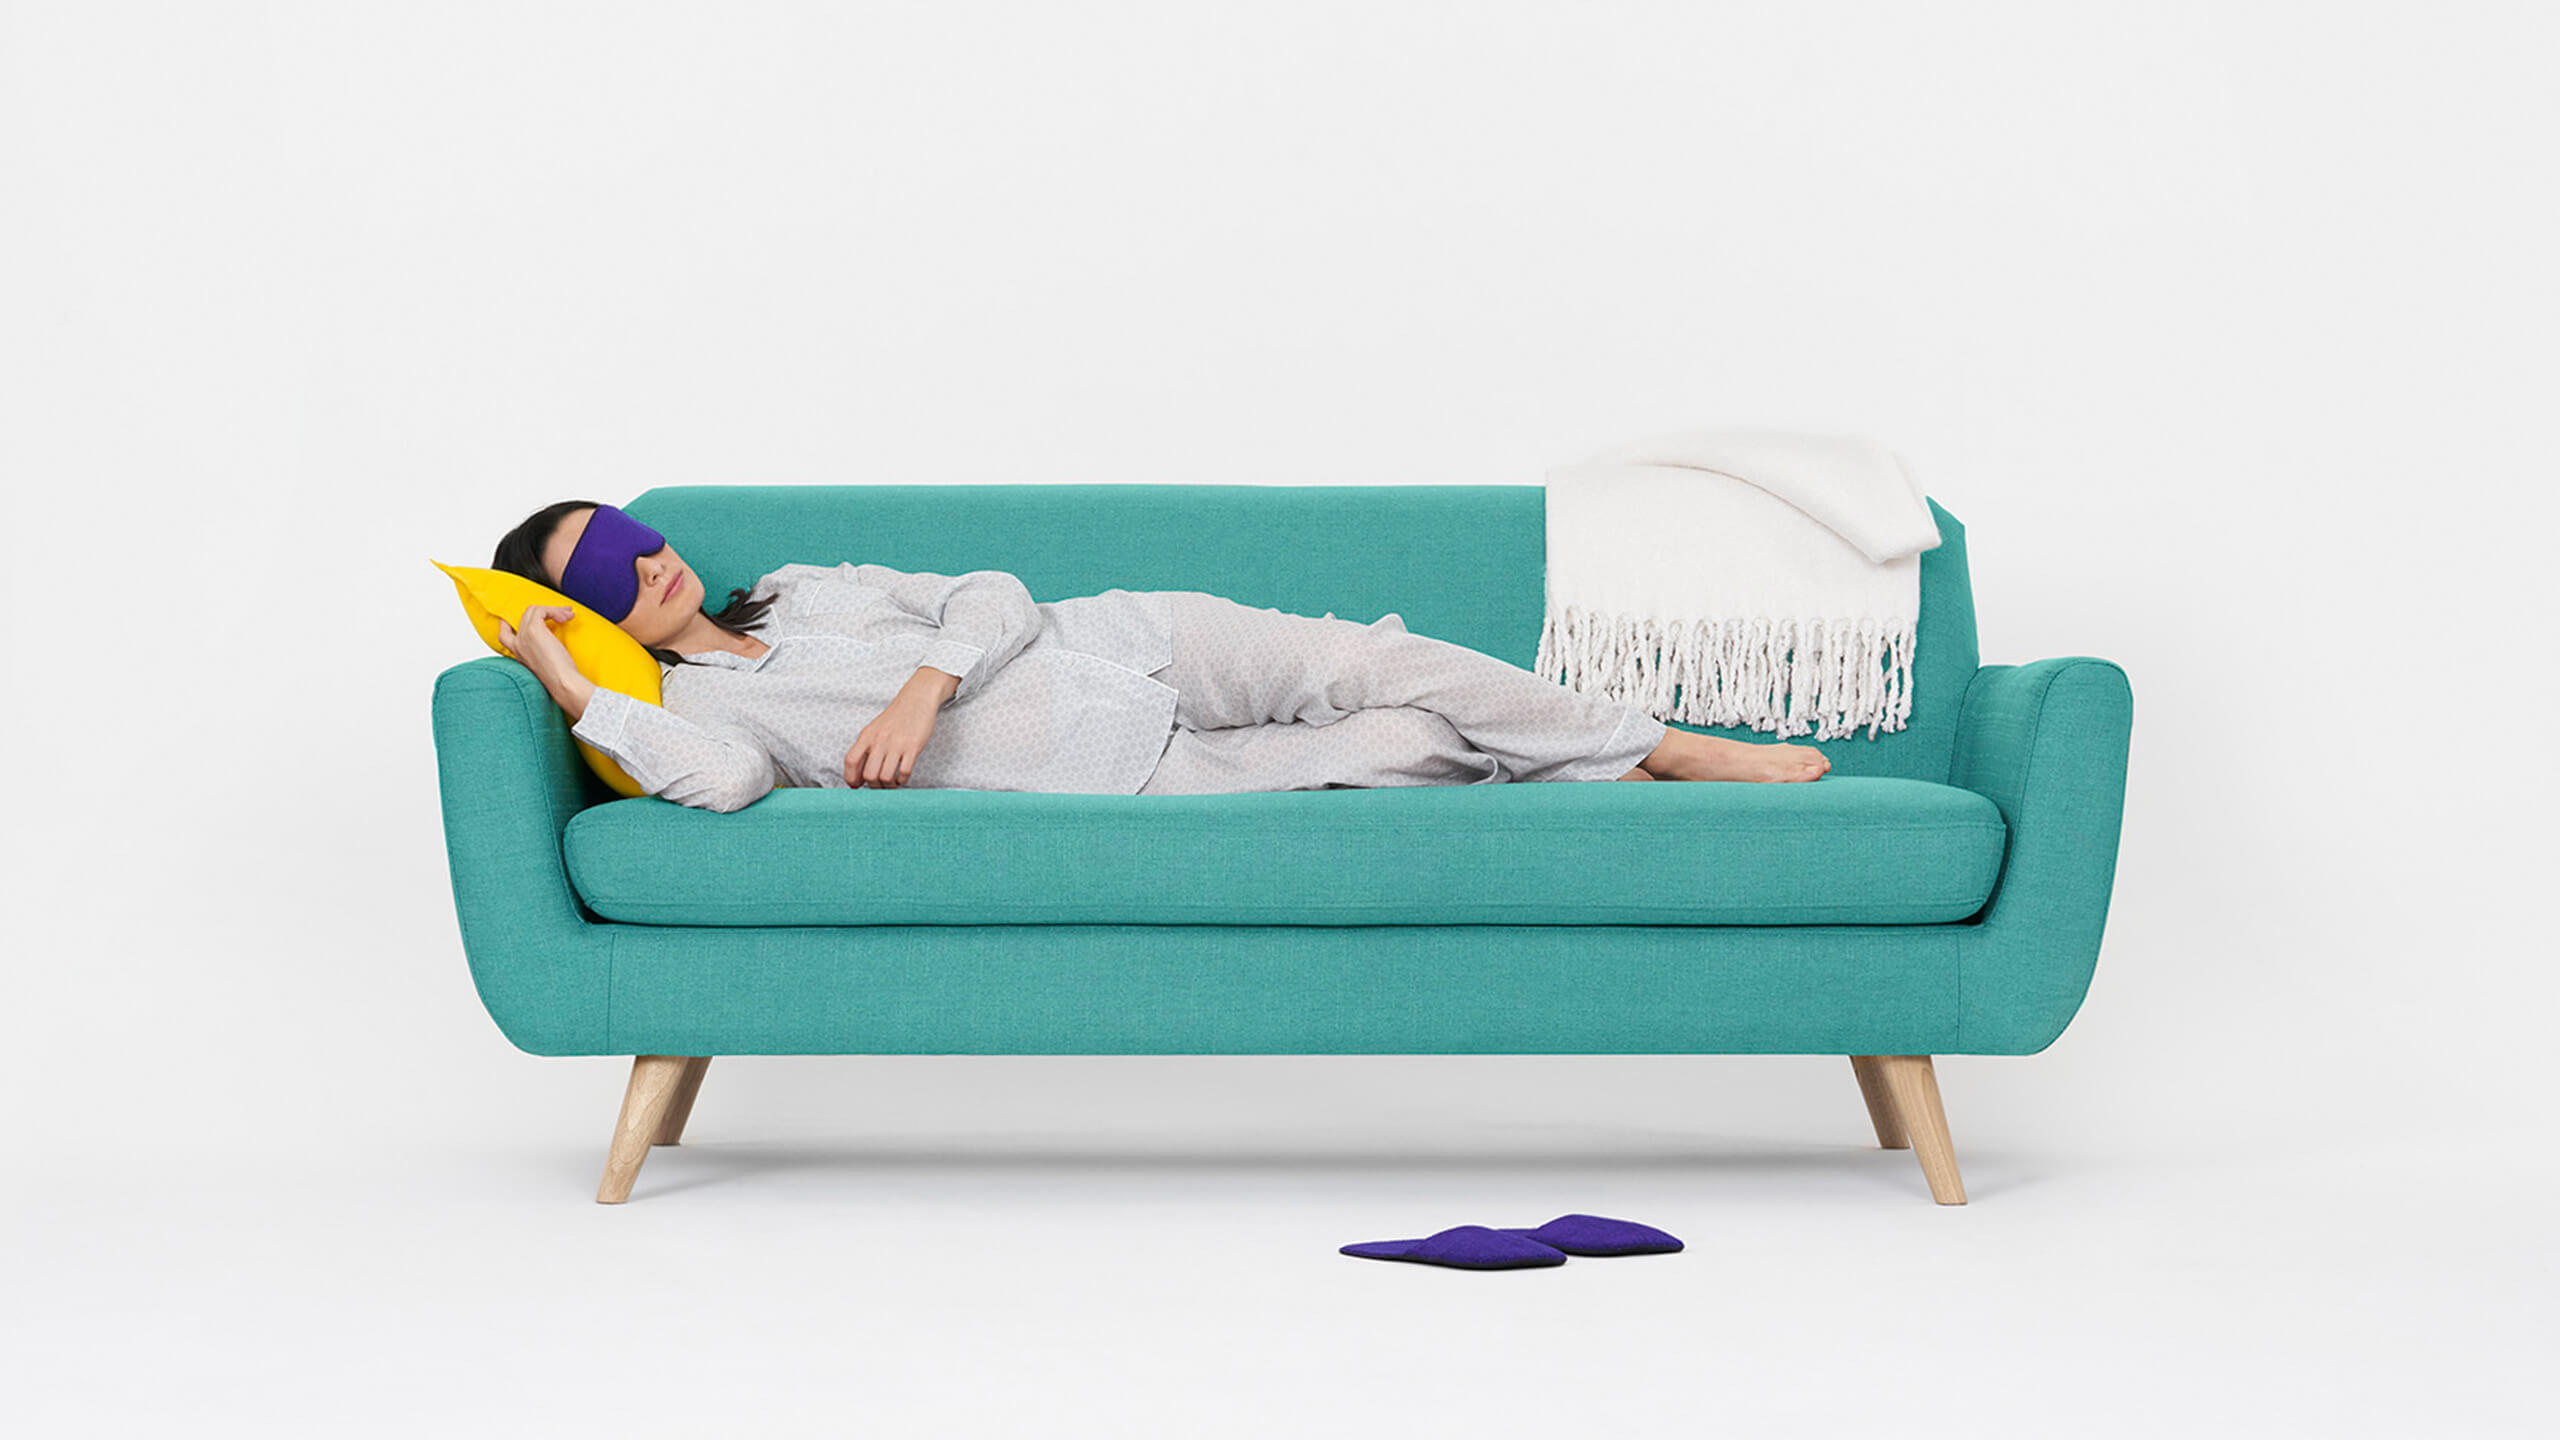 bueno-cleanly-art-direction-nap